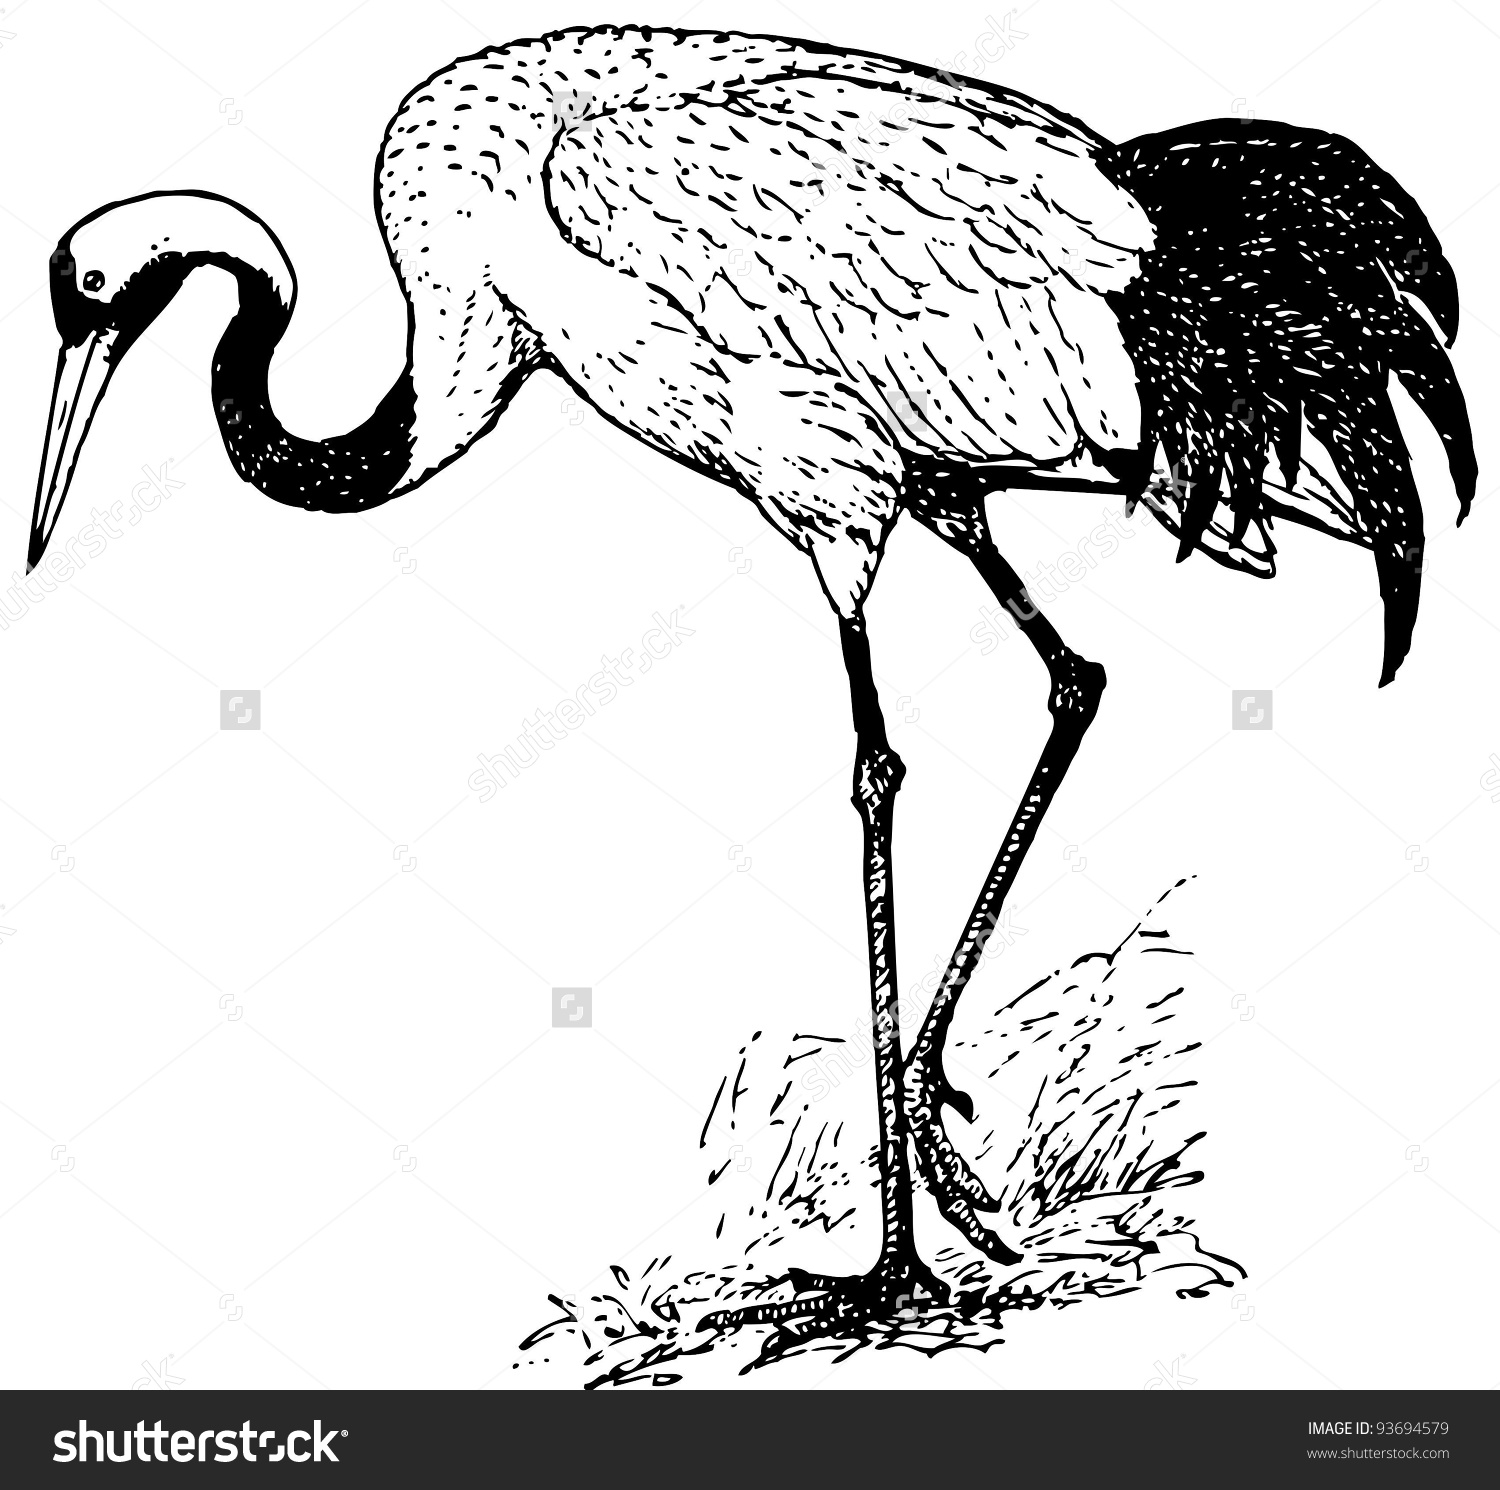 Red-crowned Crane clipart #19, Download drawings